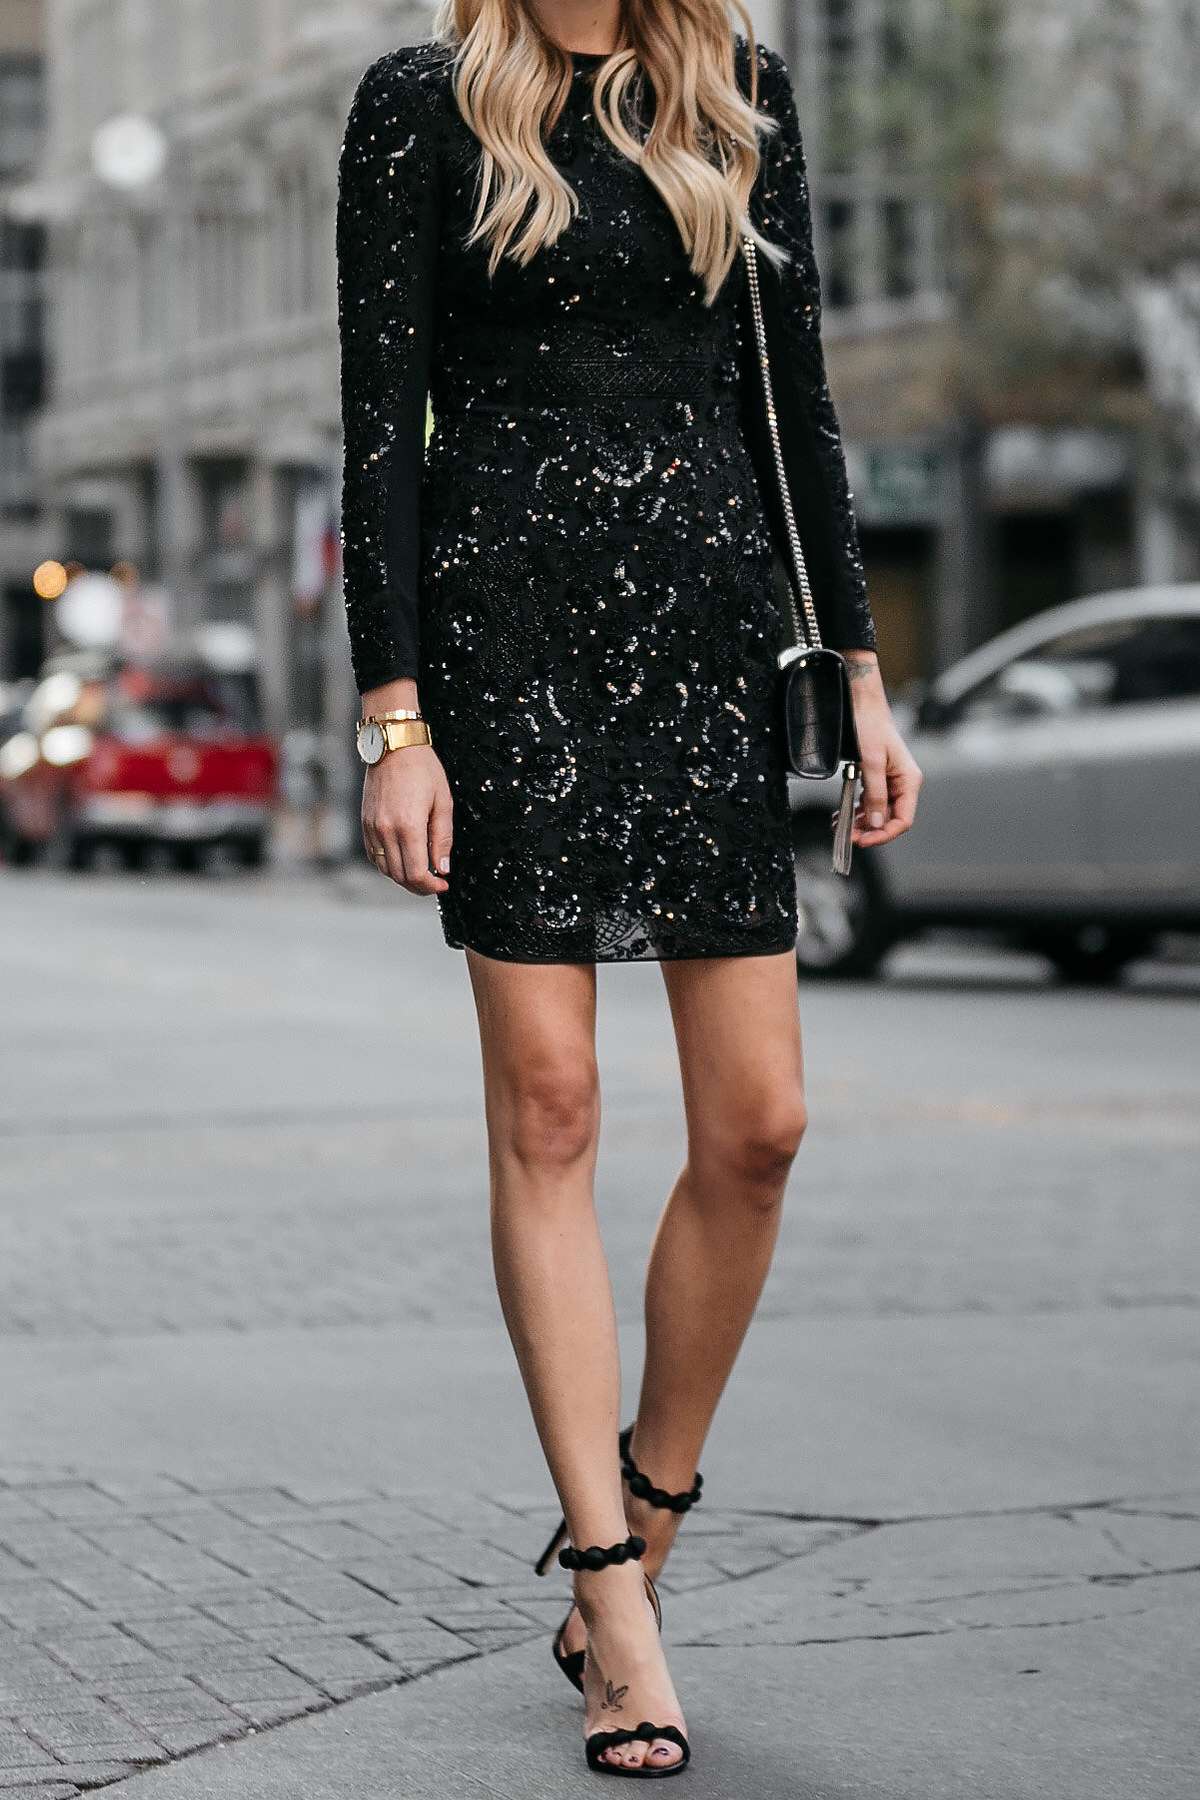 Long Sleeve Black Sequin Dress Needle and Thread Black Ankle Strap Heels Fashion Jackson Dallas Blogger Fashion Blogger Street Style NYE Outfit